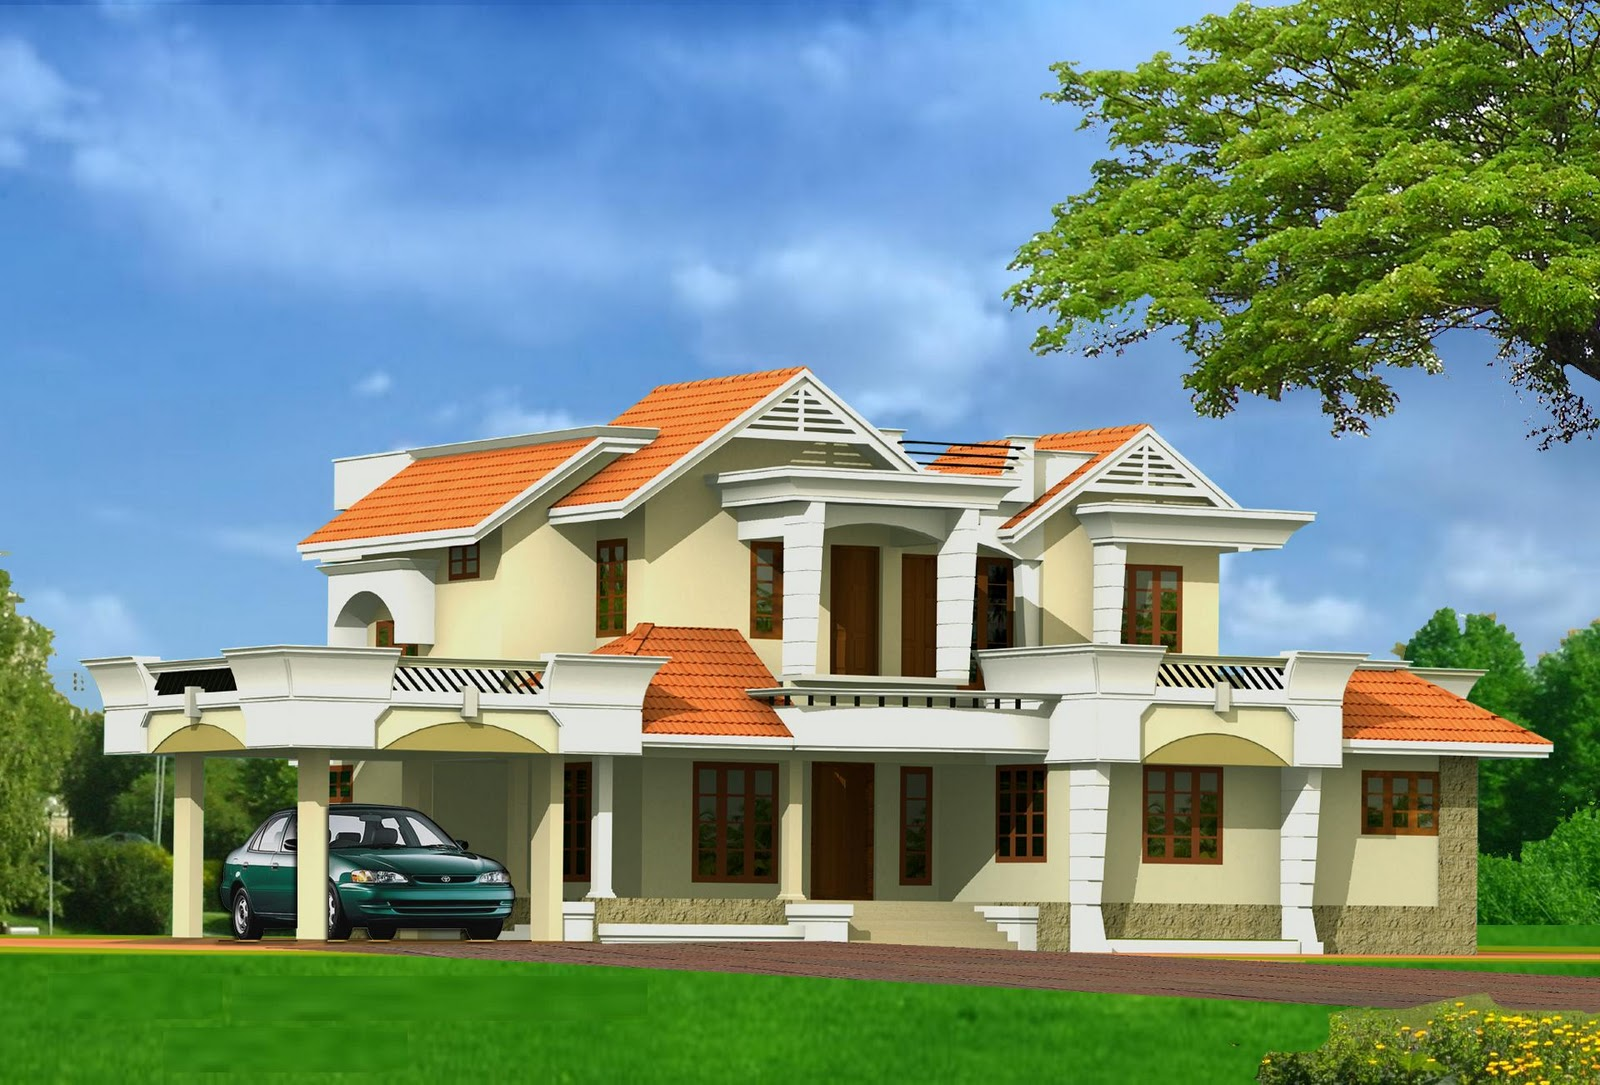 House plans and design architectural designs of for House building ideas